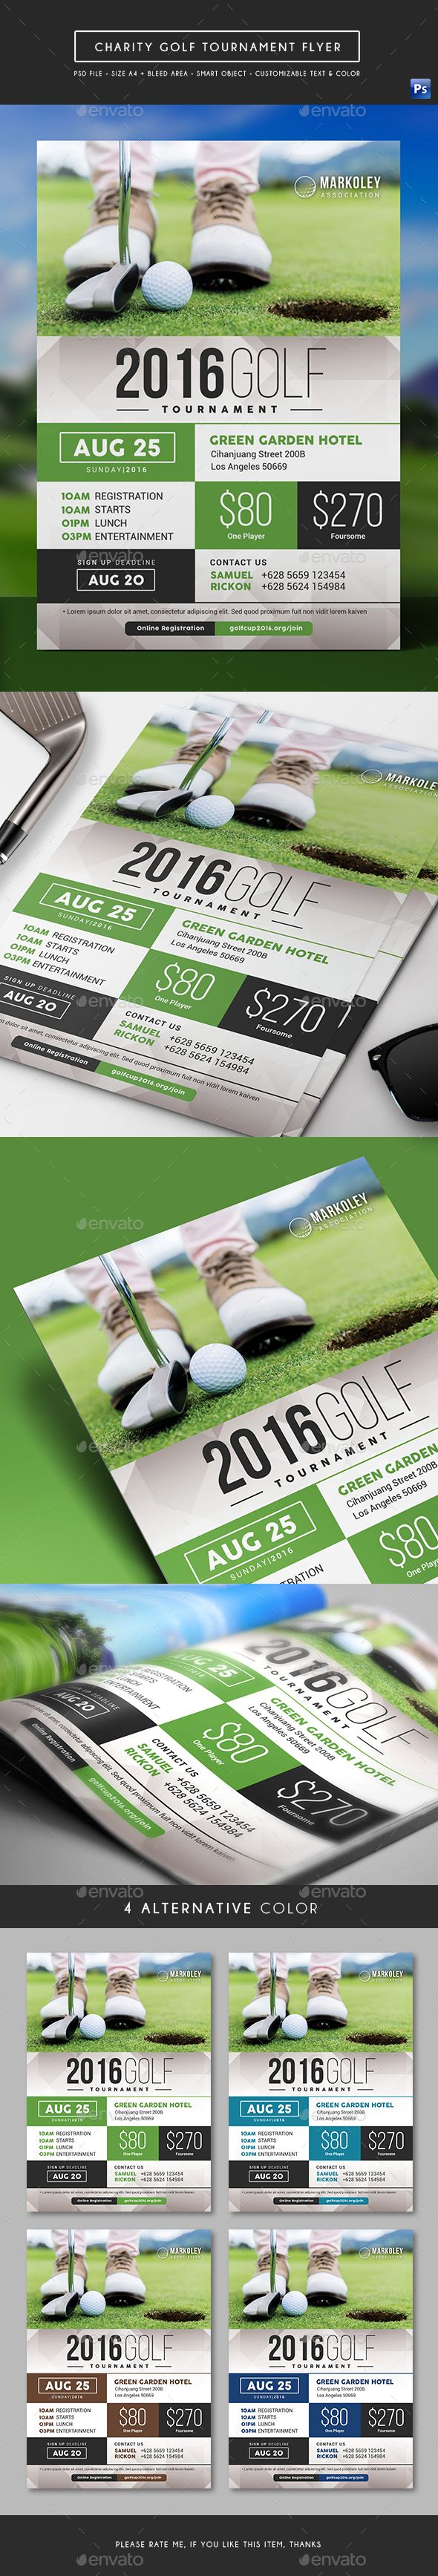 Charity Golf Tournament Flyer  Golf Event Flyers And Edit Text